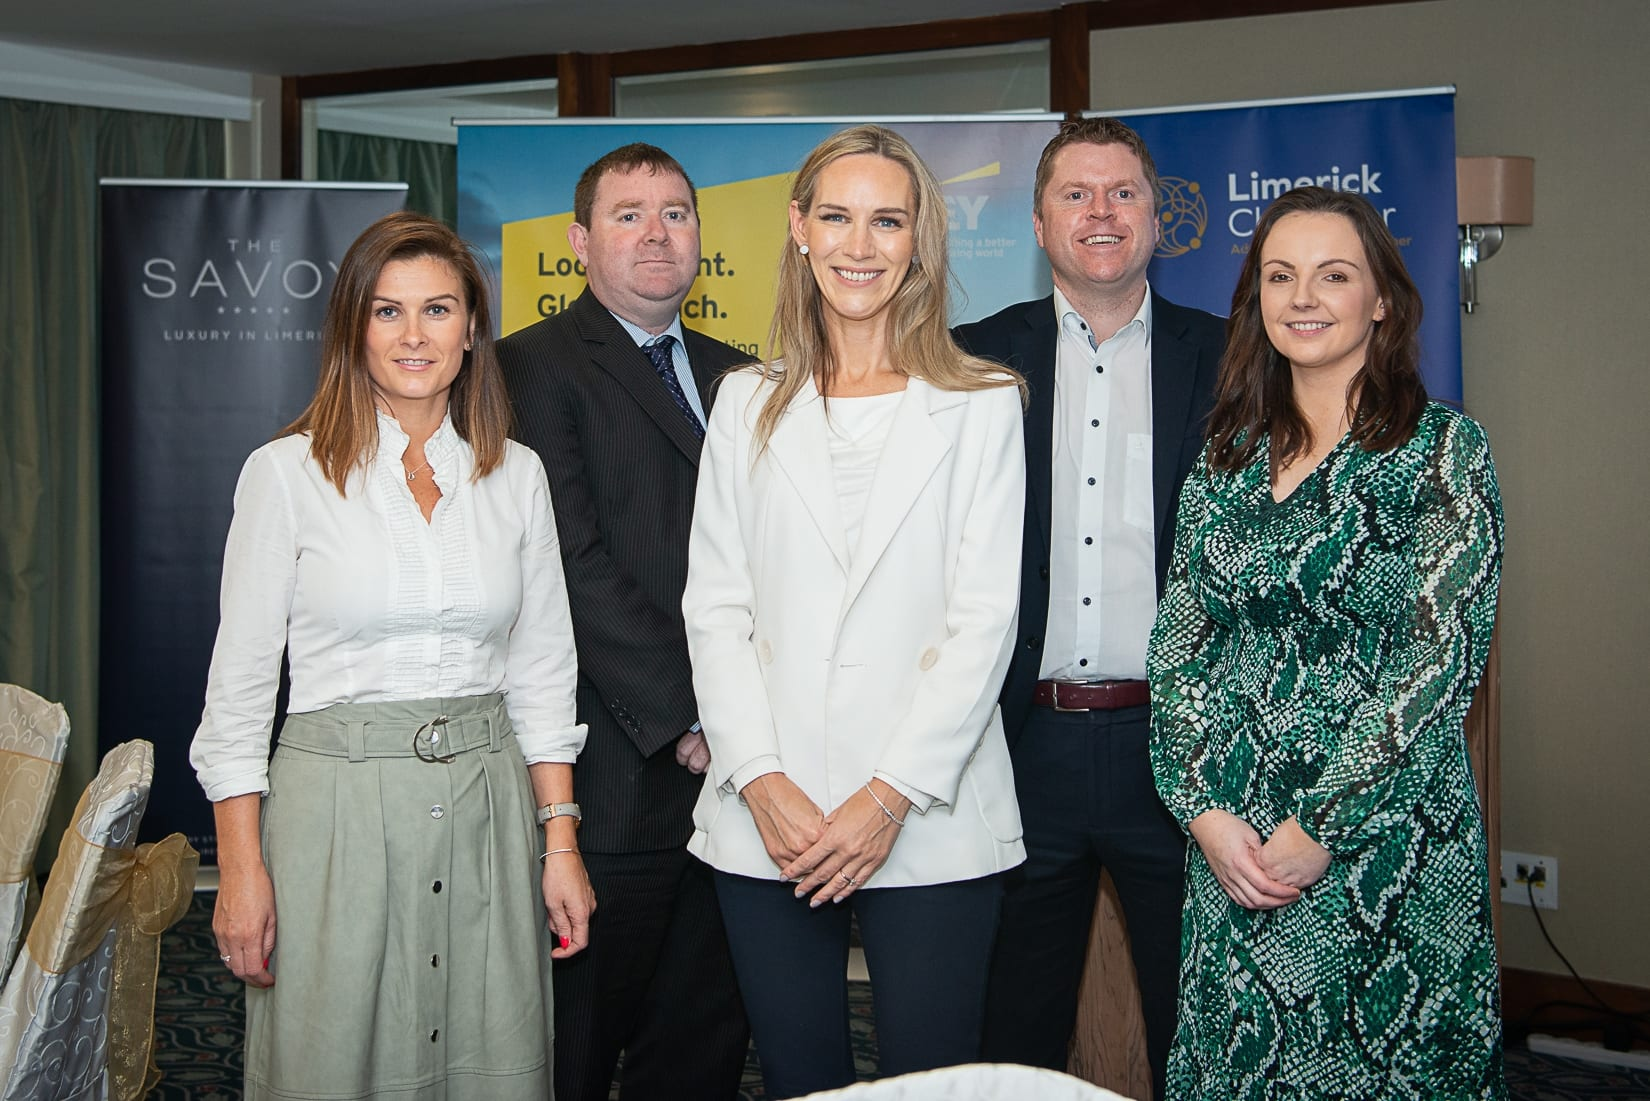 No repro fee-Limerick Chamber Autumn Luncheon which was held in The Savoy Hotel on Monday 23rd September - From Left to Right: Leanne  Storan- Director of Tax Limerick EY, Seamus Coffey - Chair Irish Fiscal Advisory Council, Dee Ryan - CEO Limerick Chamber, Eoin Ryan - President Limerick Chamber, Dr Catriona Cahill - Chief Economist Limerick Chamber.  Photo credit Shauna Kennedy